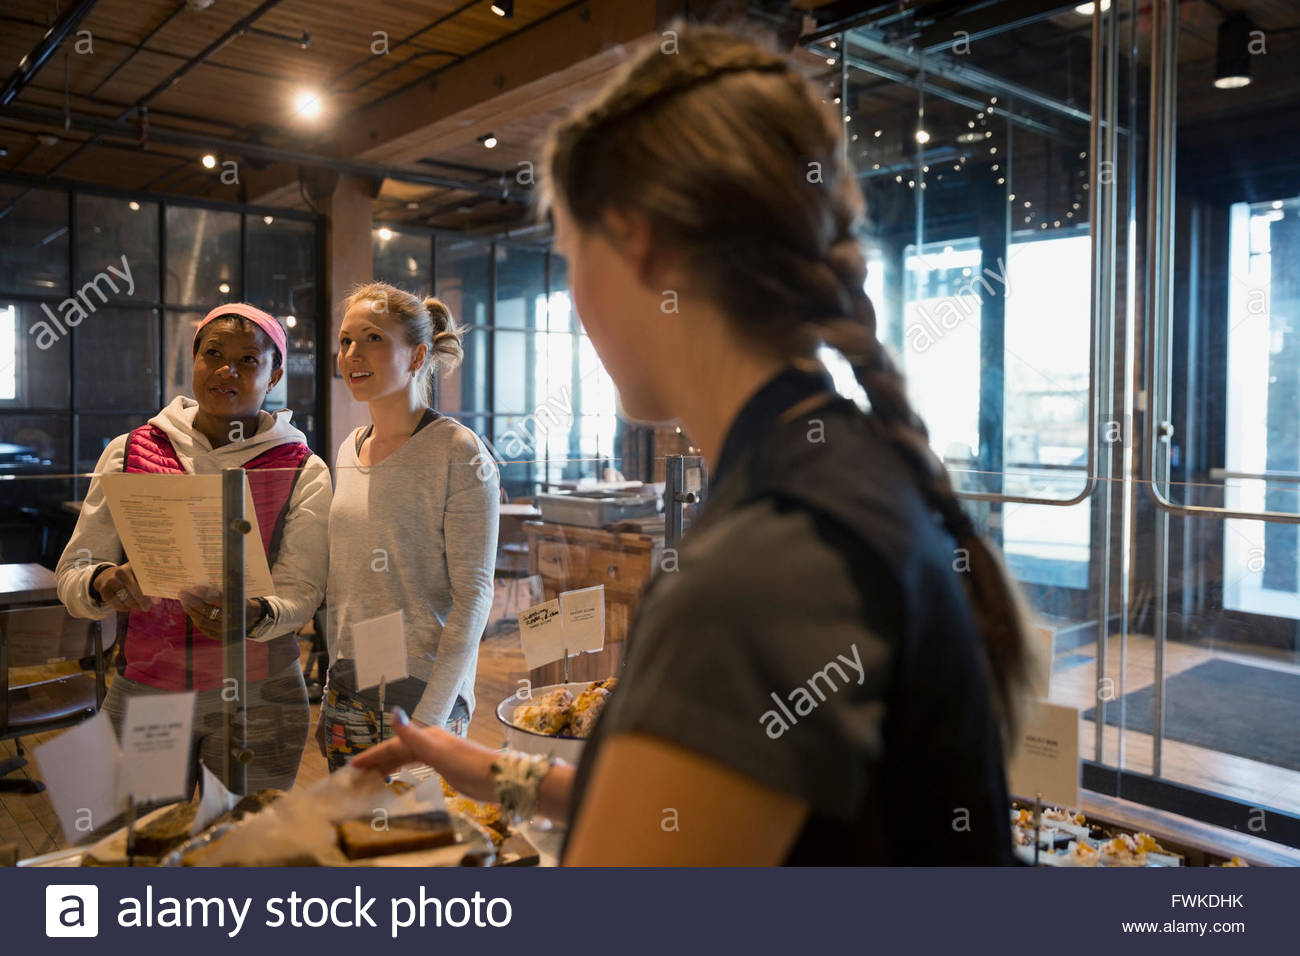 Bakery worker waiting for customers to order - Stock Image